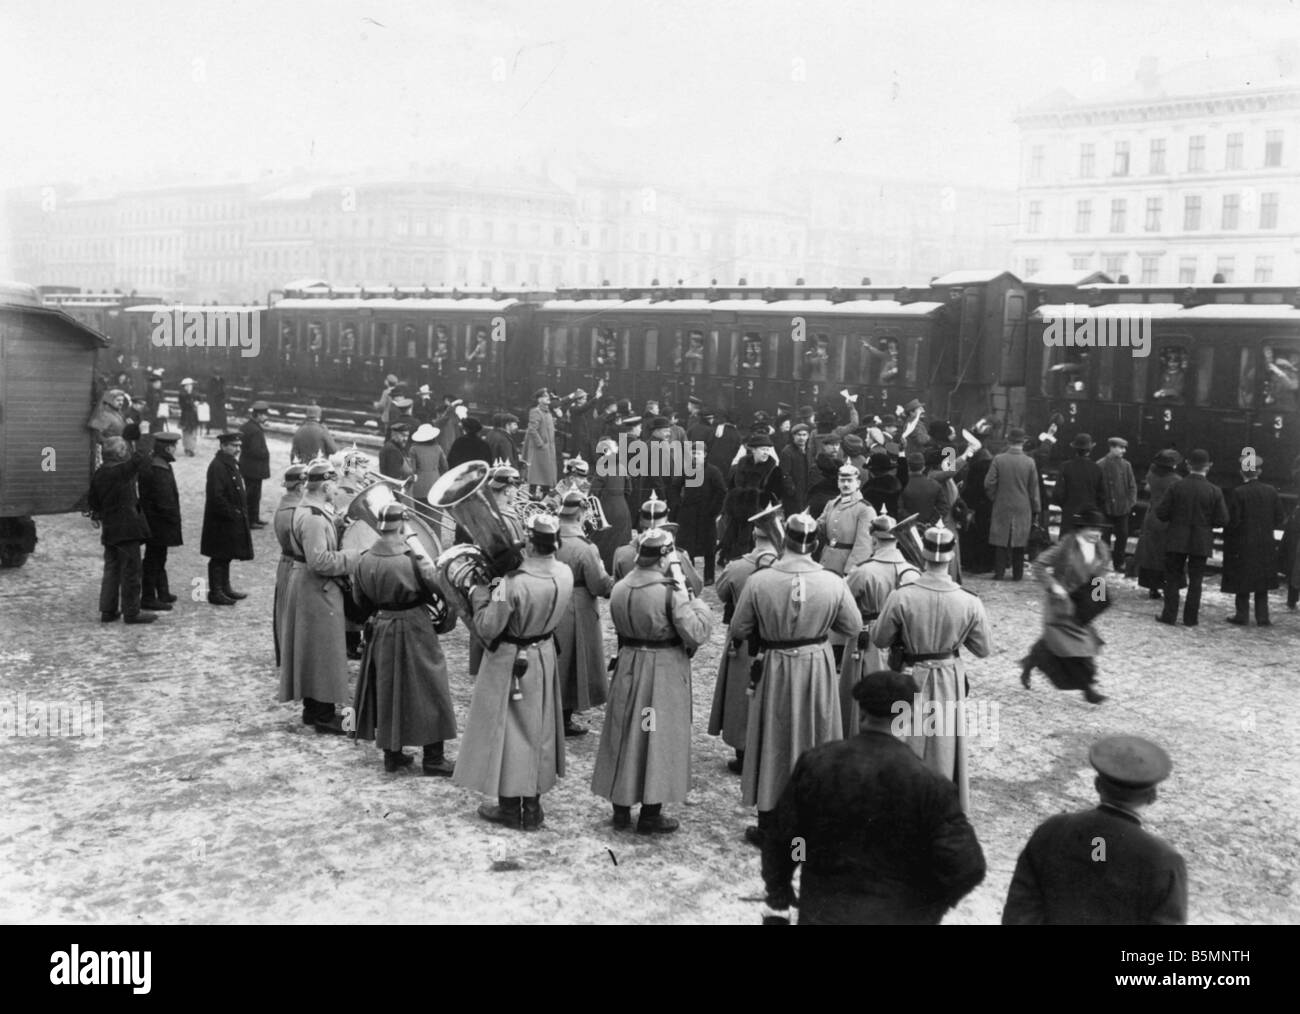 8 1914 0 0 A4 2 Troop transport Military band WWI Troop transport at a Berlin train station A military band playing - Stock Image